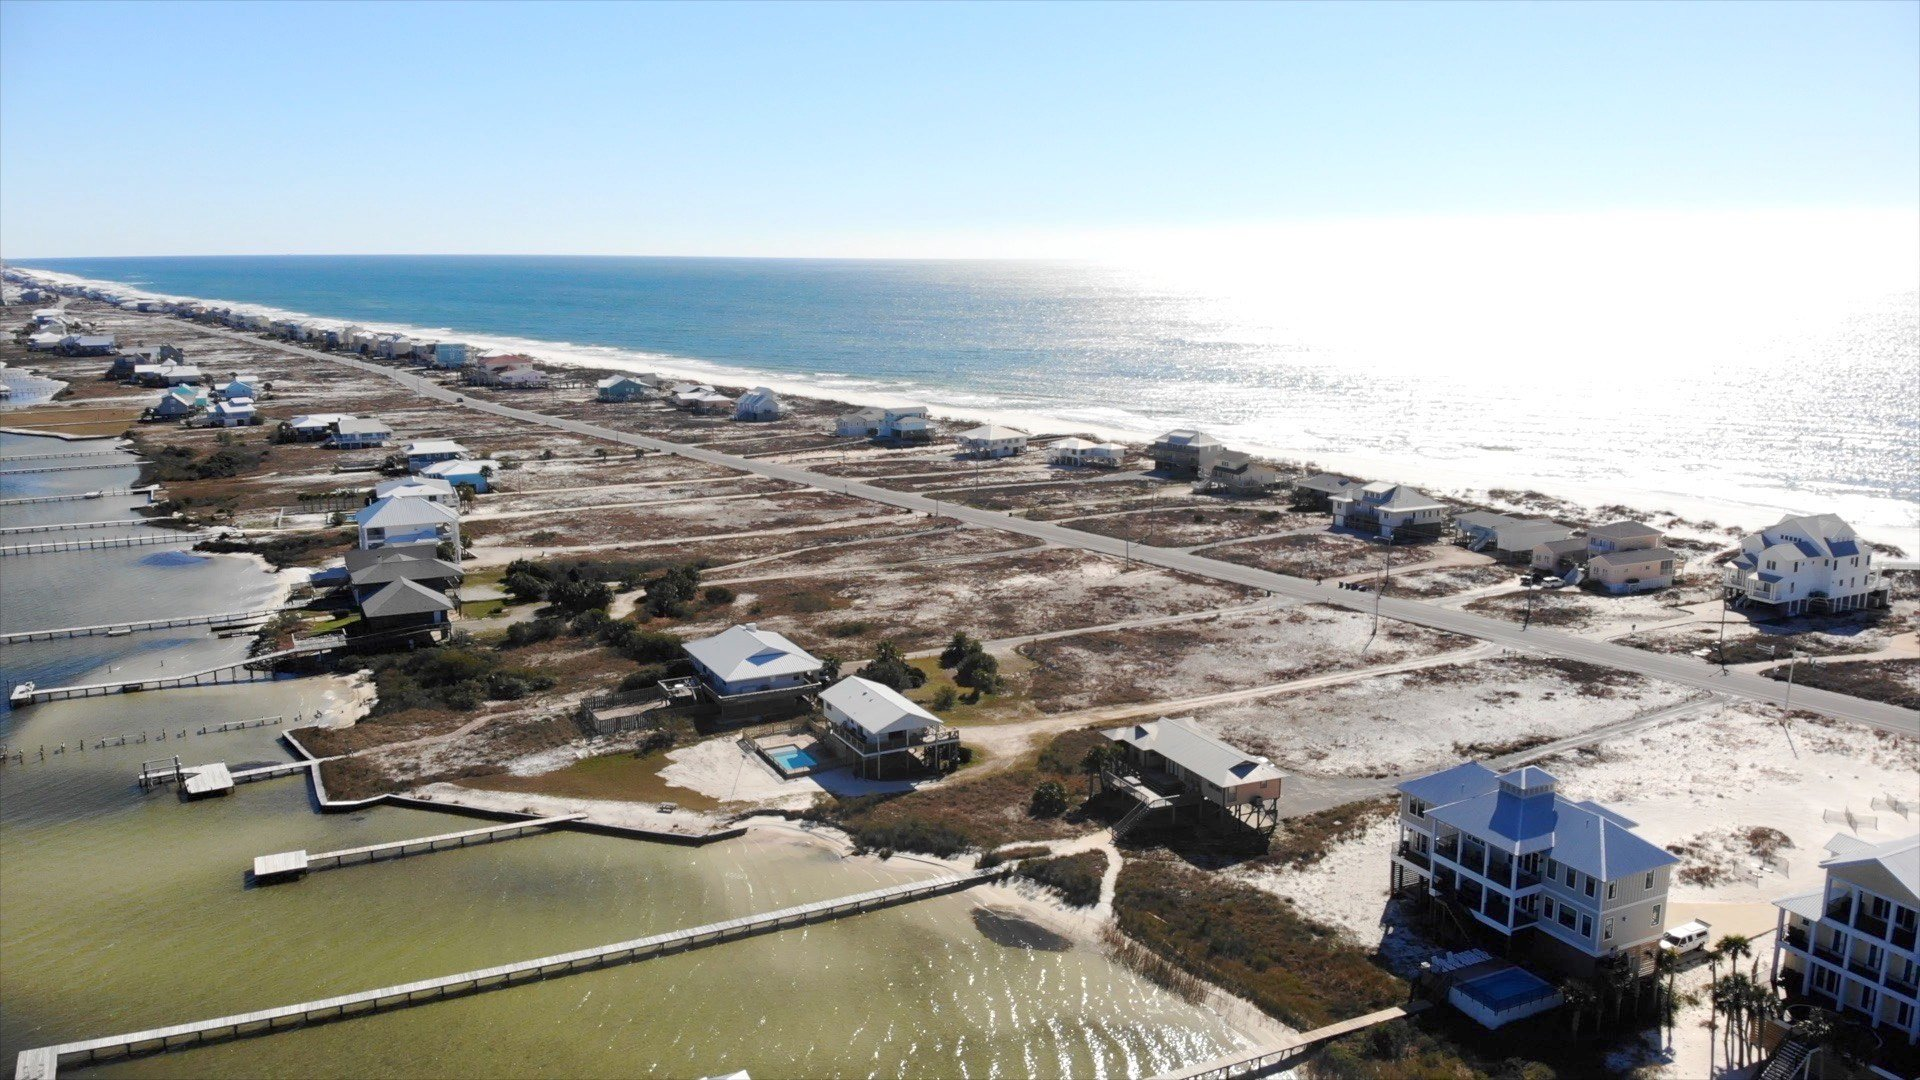 Aerial Picture of our House Rental with Pool, the Lagoon, and the Ocean.